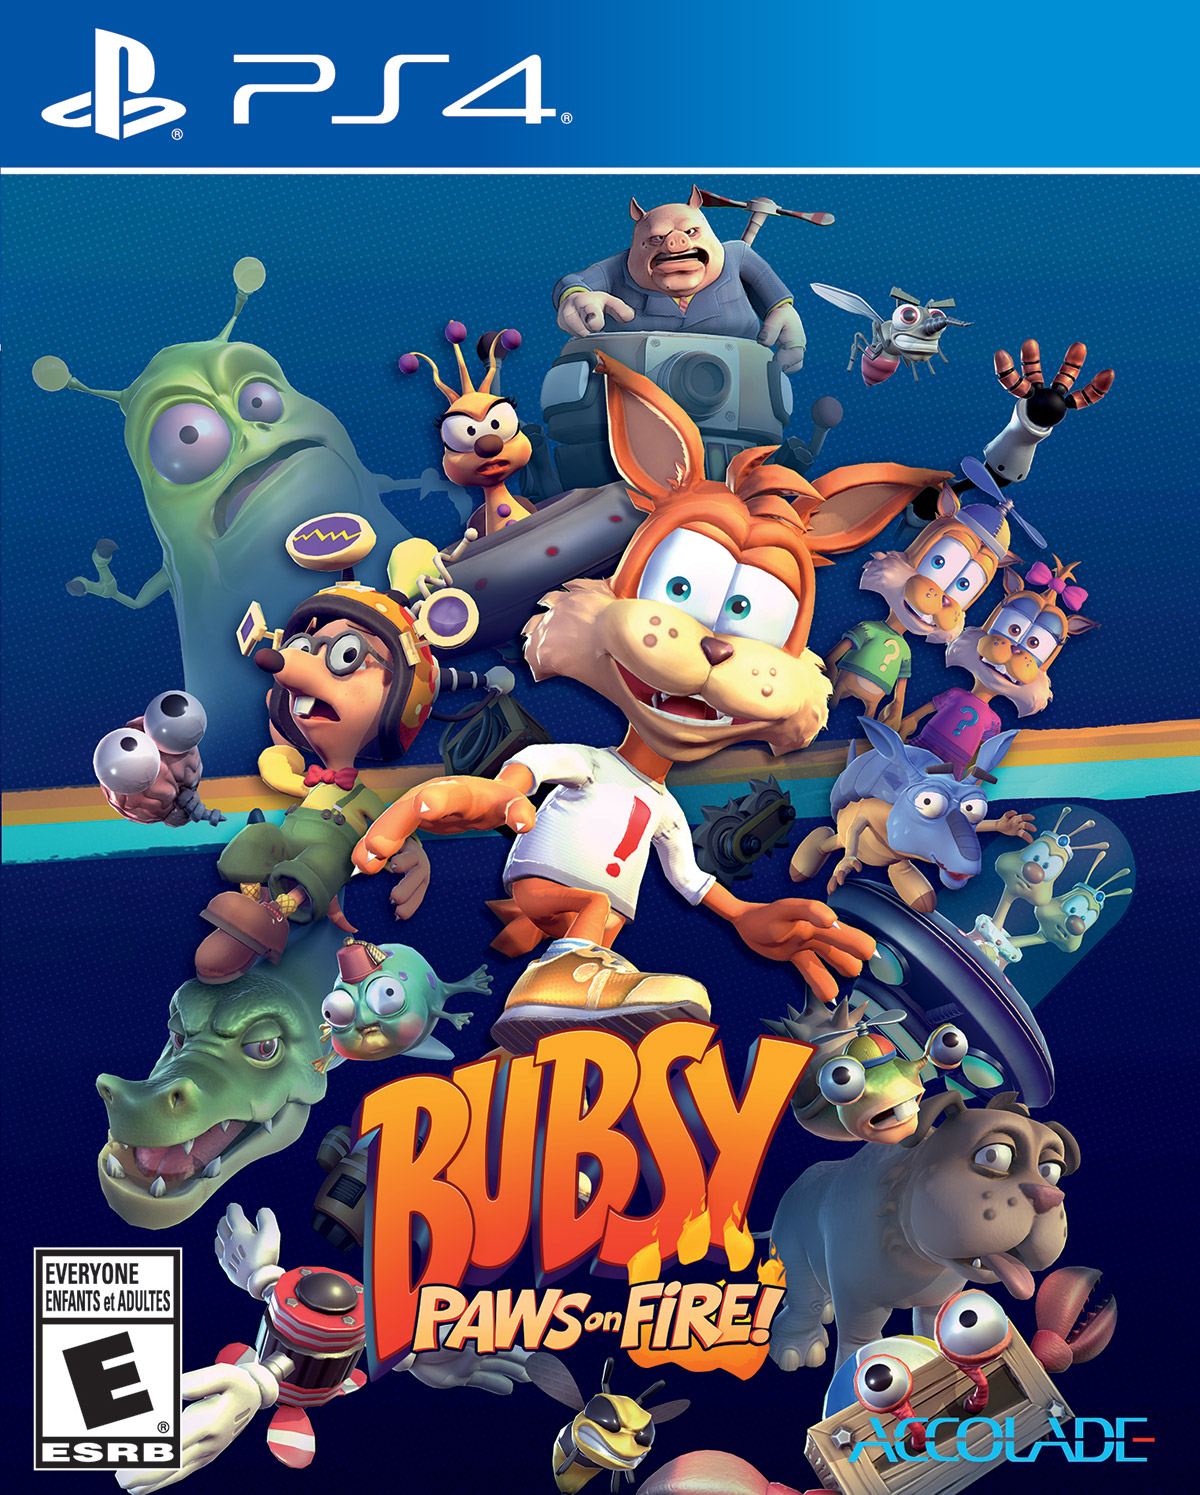 Bubsy-Paws-on-Fire_2019_04-02-19_001